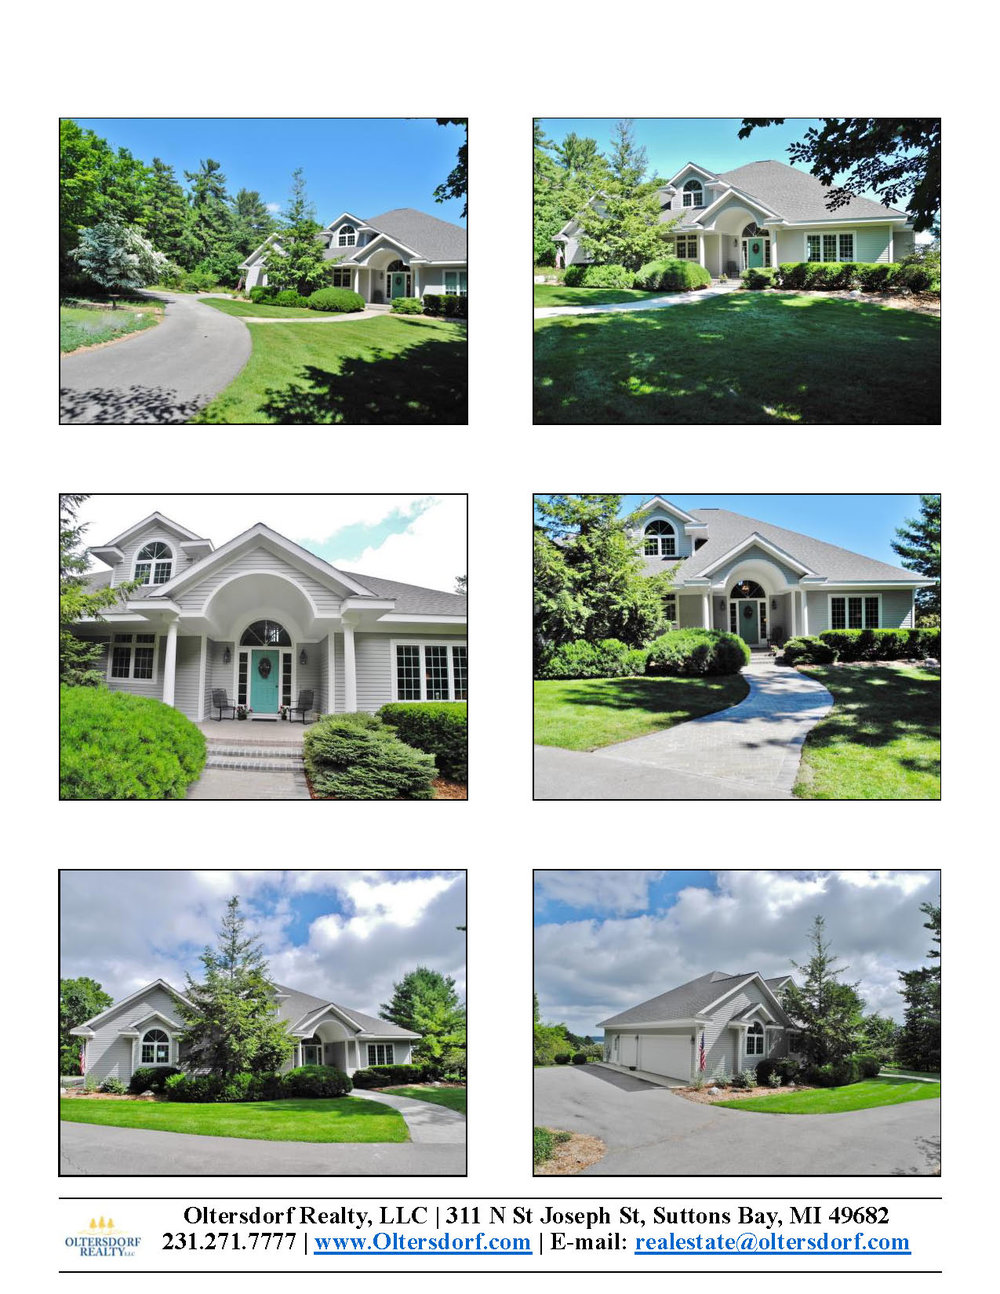 424 N School Hill Court, Suttons Bay real estate for sale by Oltersdorf Realty LLC - Information packet (3).jpg